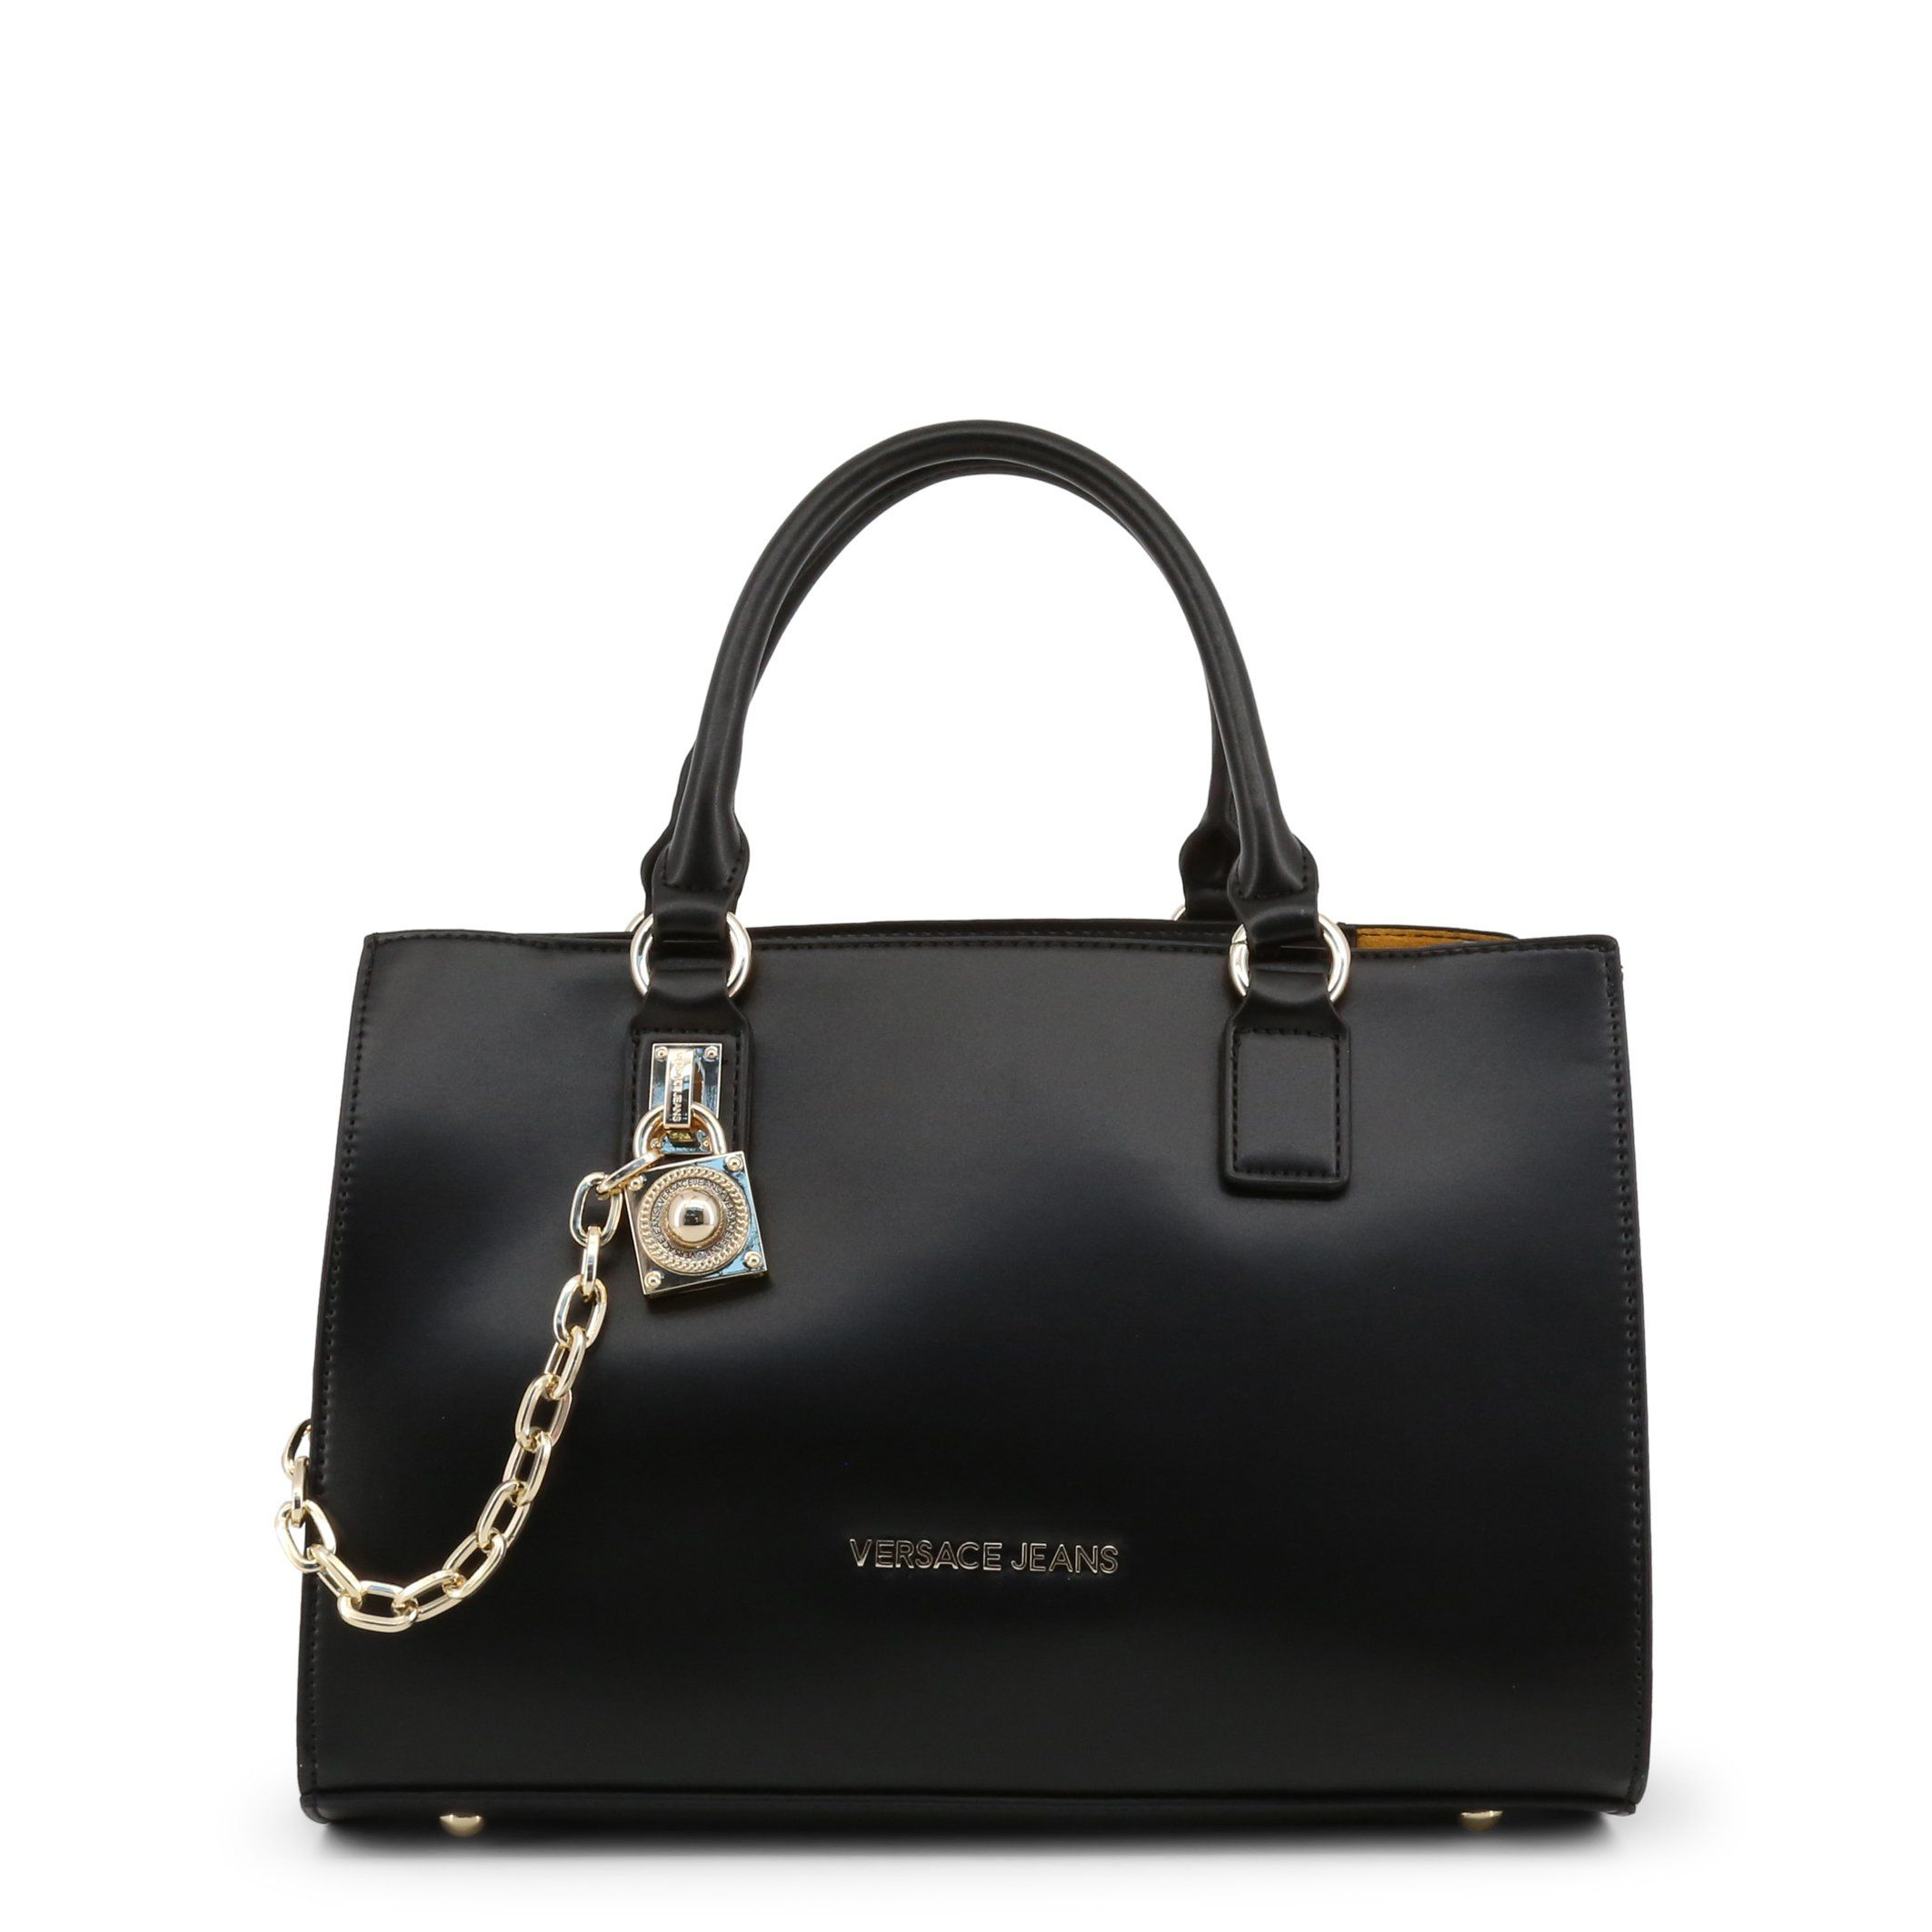 7f5649091a9d Versace Jeans E1VSBBG7 70779  men  Versace  women s  coats  hair  shoes   Nike  garden  dogs  bags